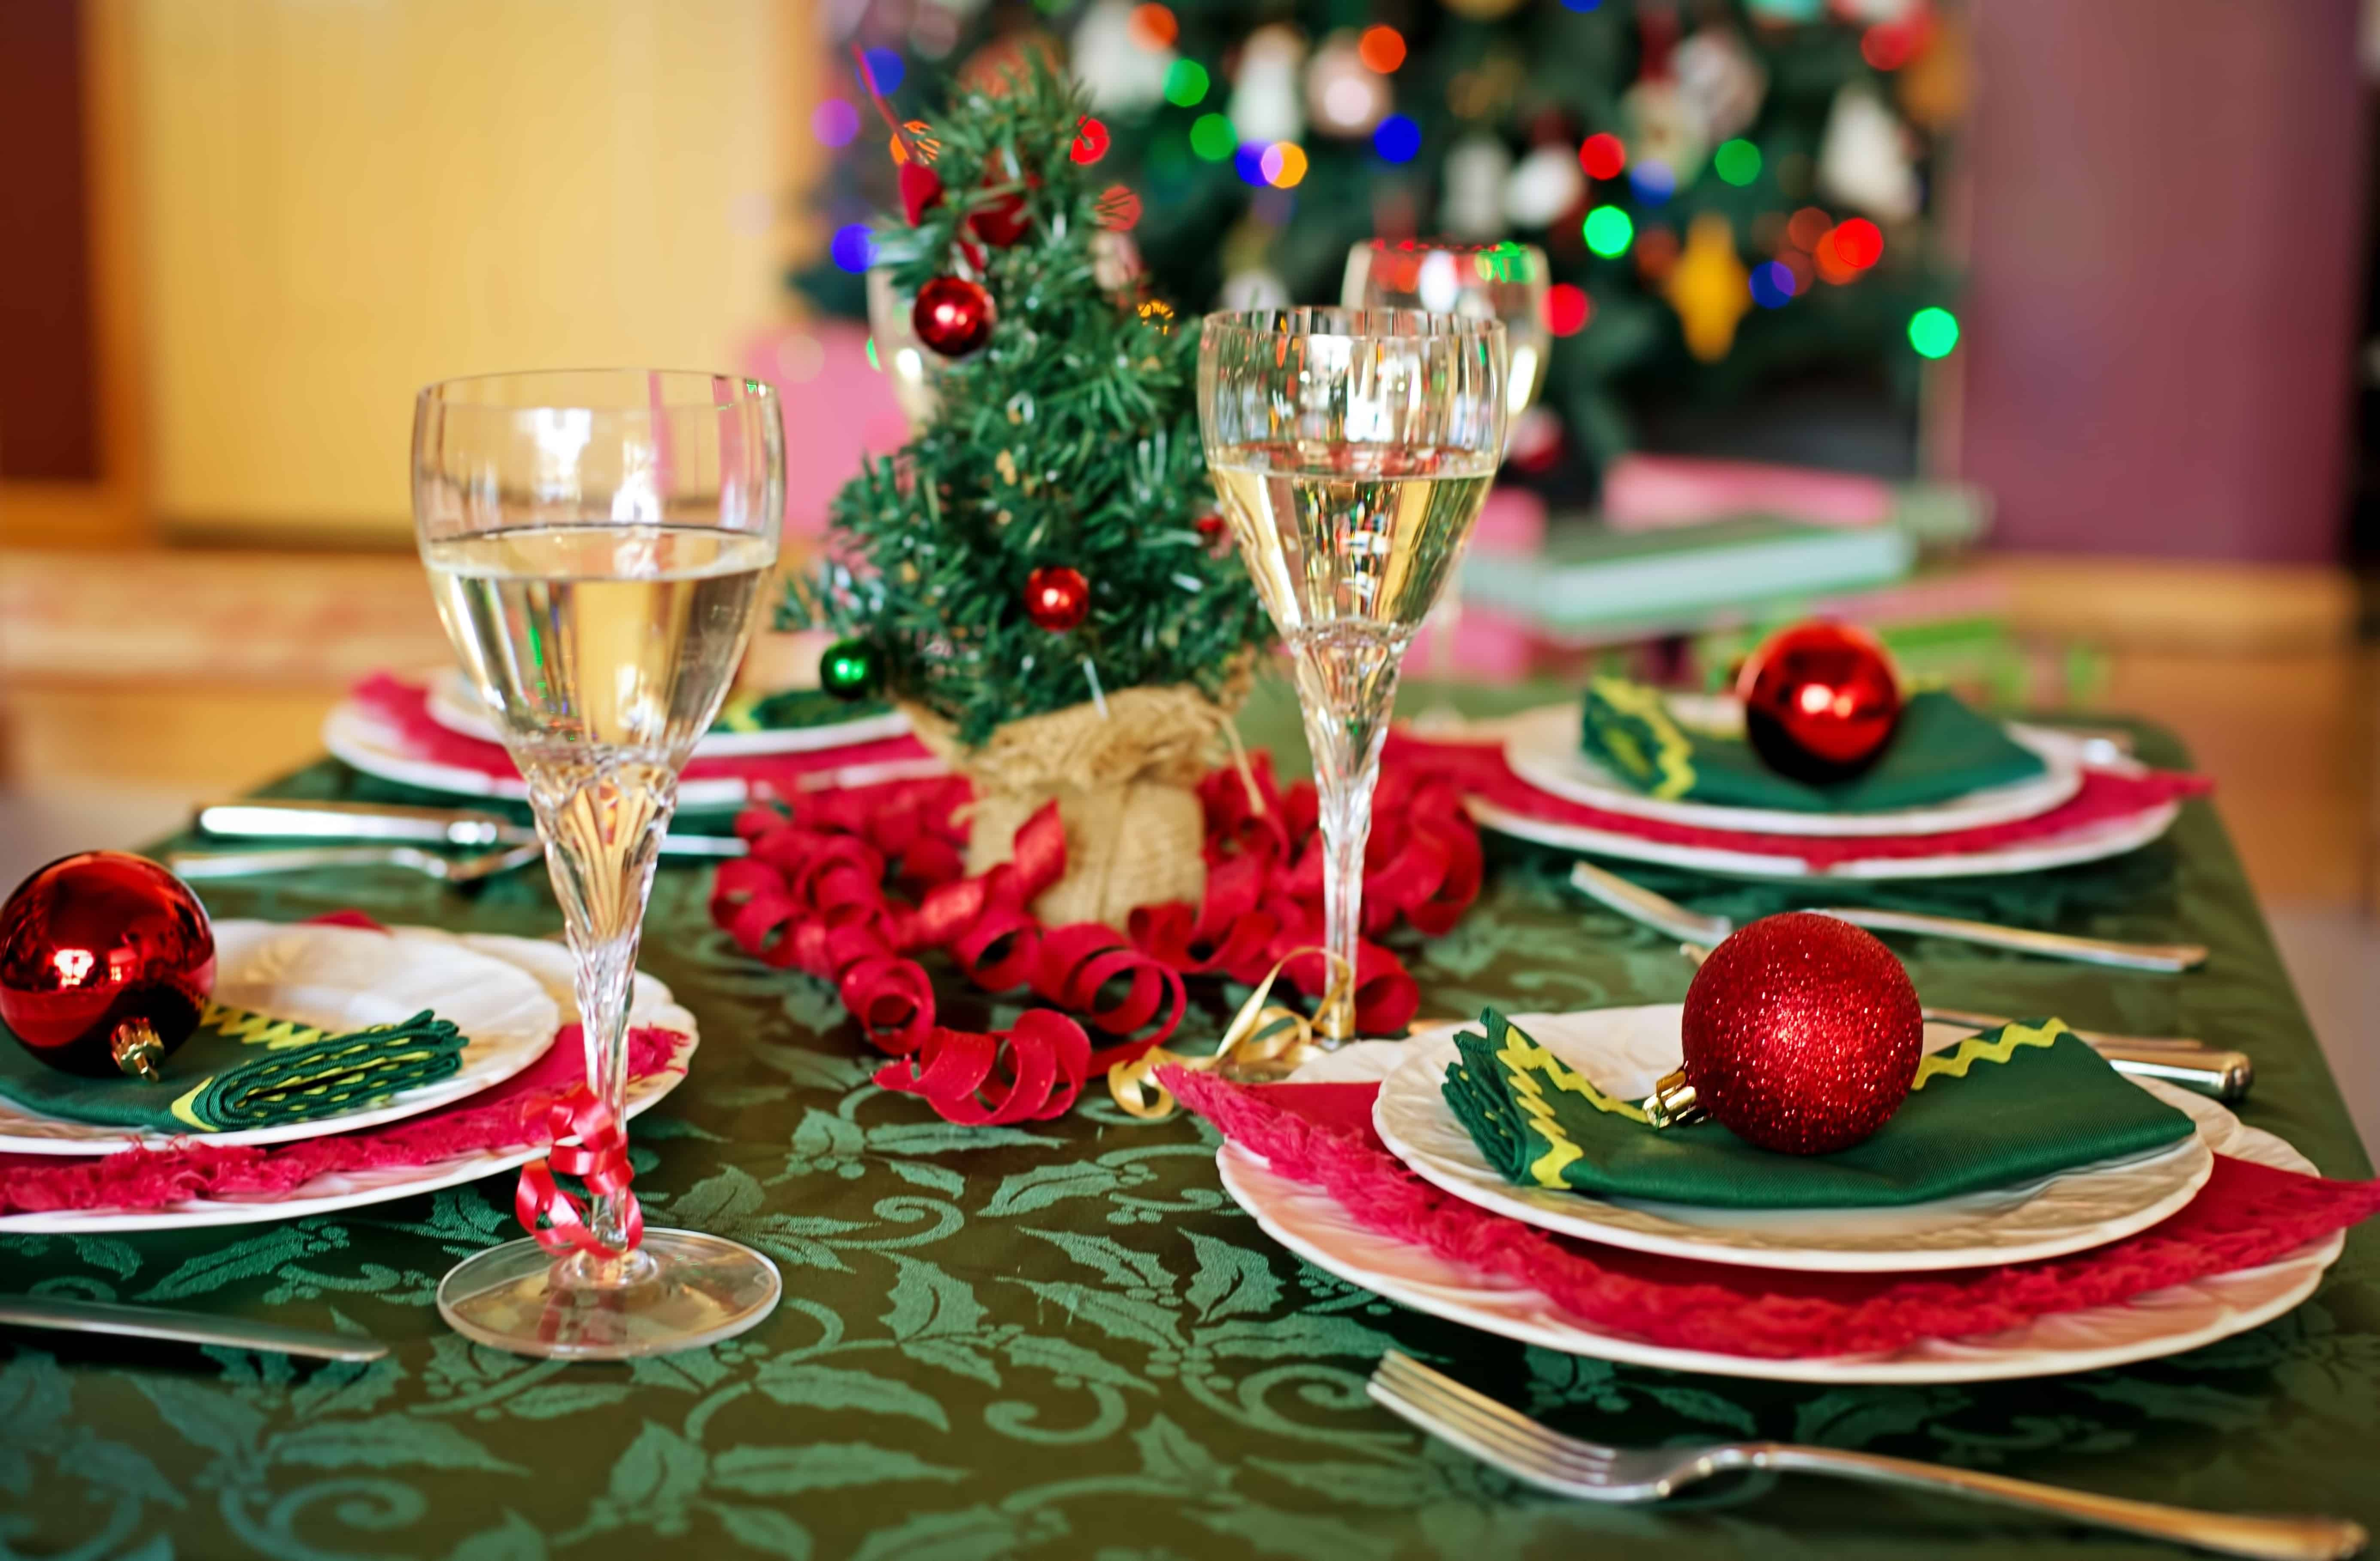 Mexico Christmas Dinner.Traditional Meals For Christmas In Mexico Expats In Mexico